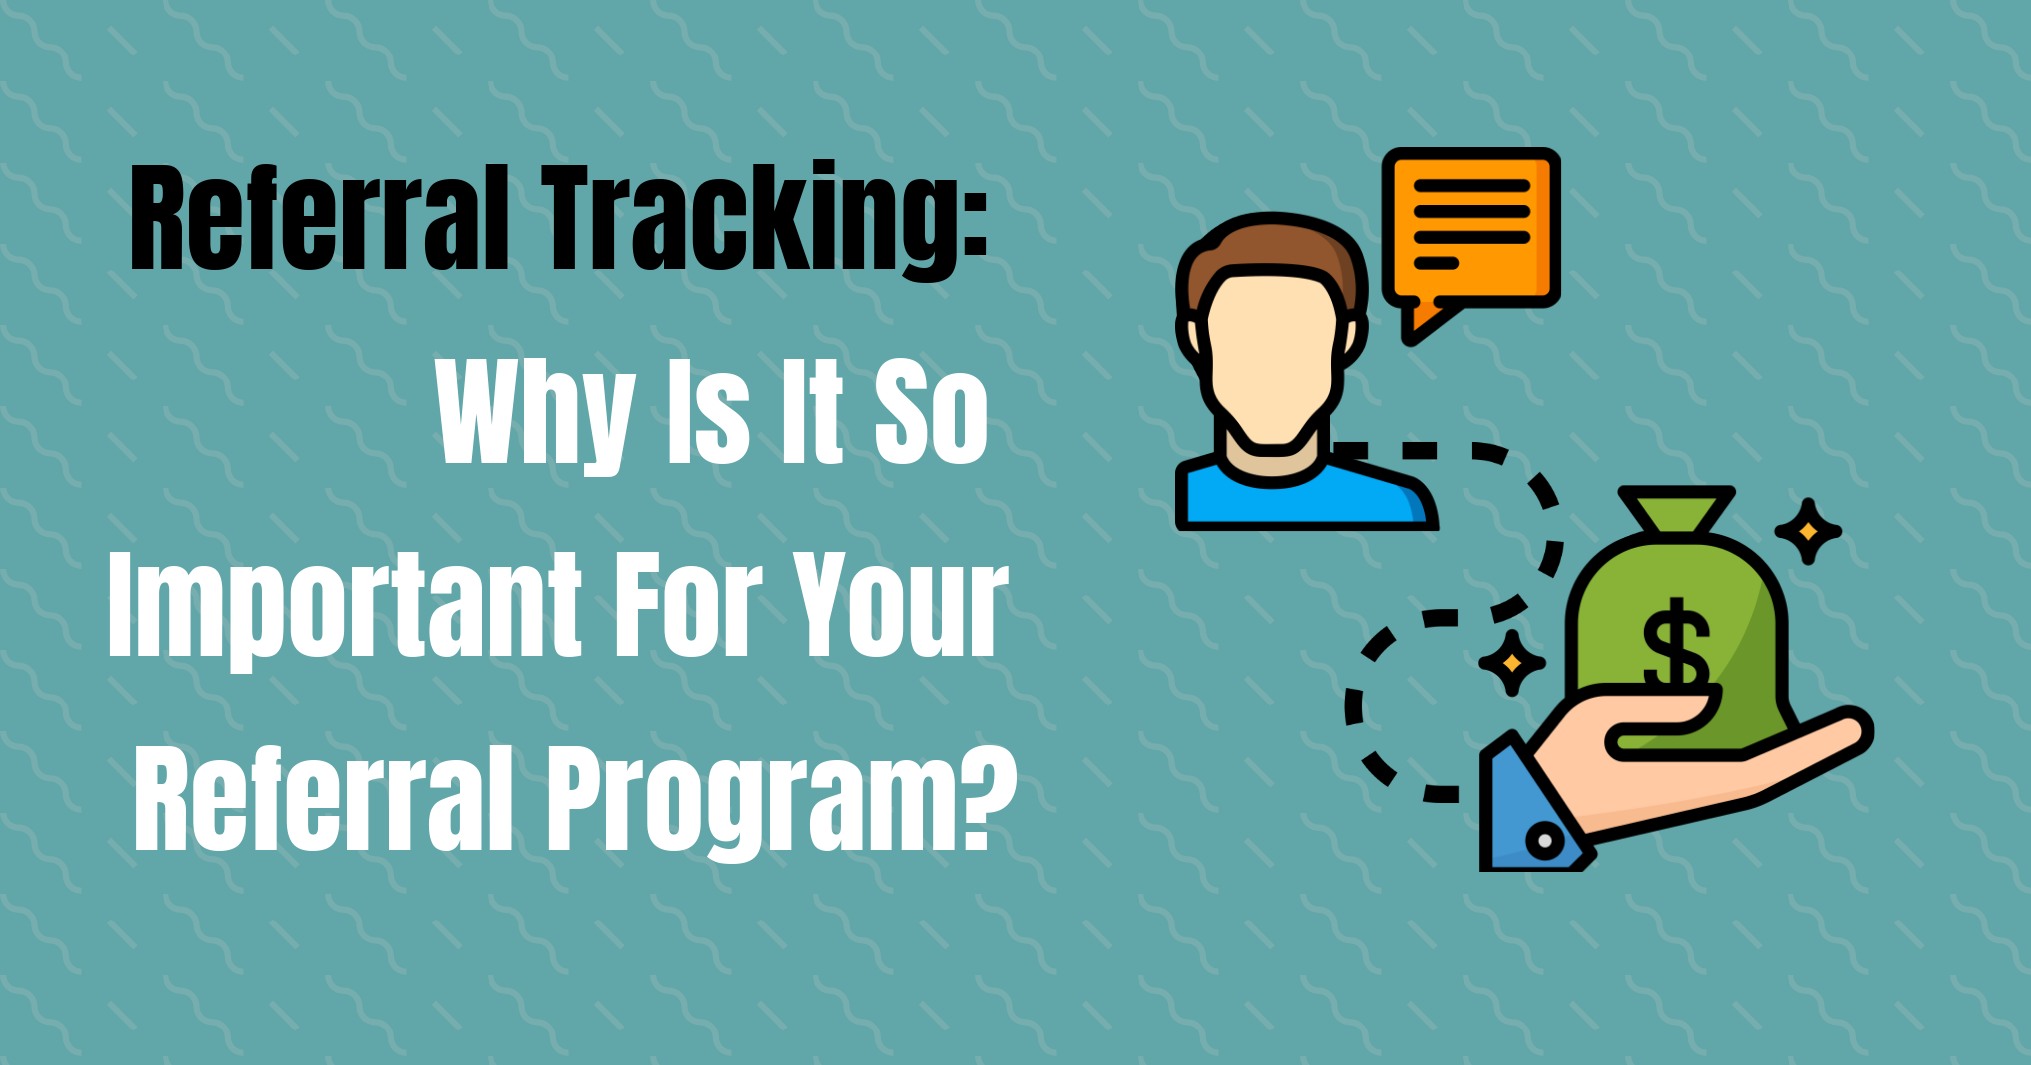 How To Track Referrals: Why Is It So Important For Your Referral Program?